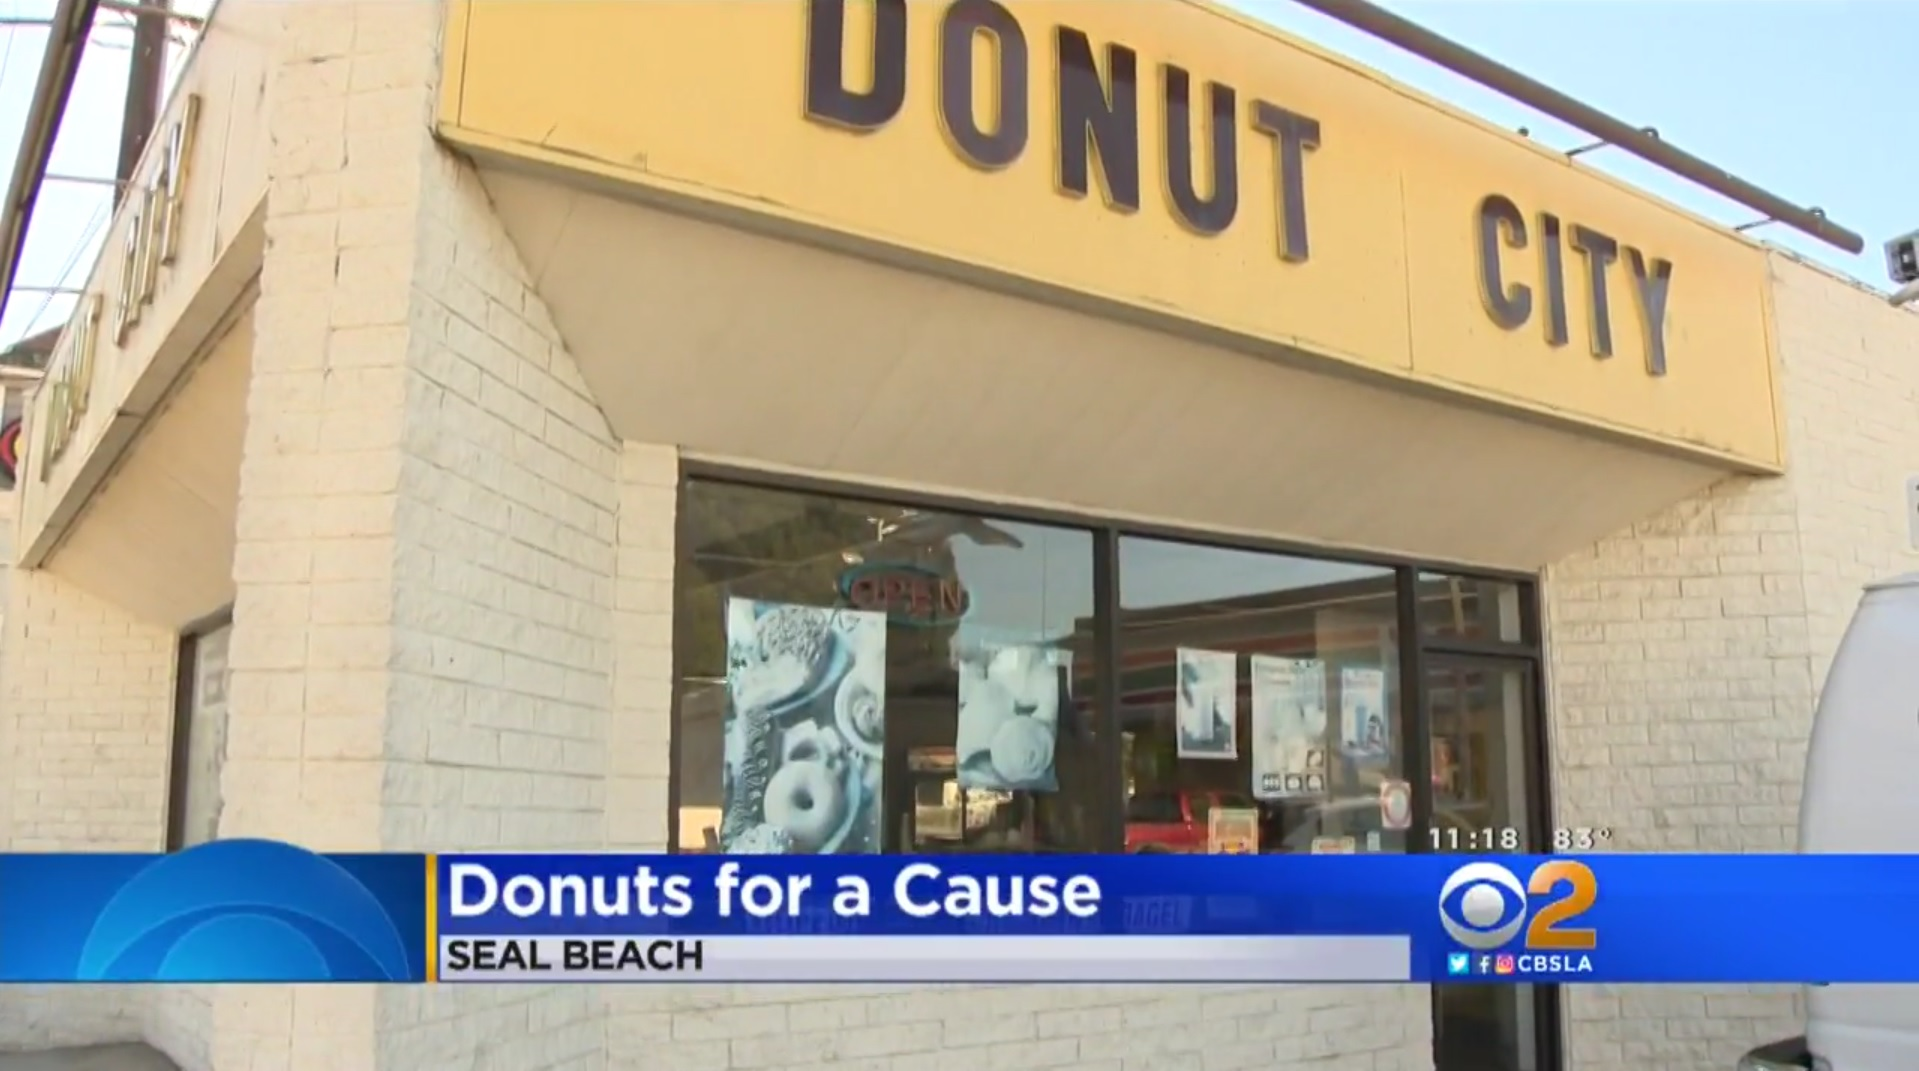 Donuts for a Cause